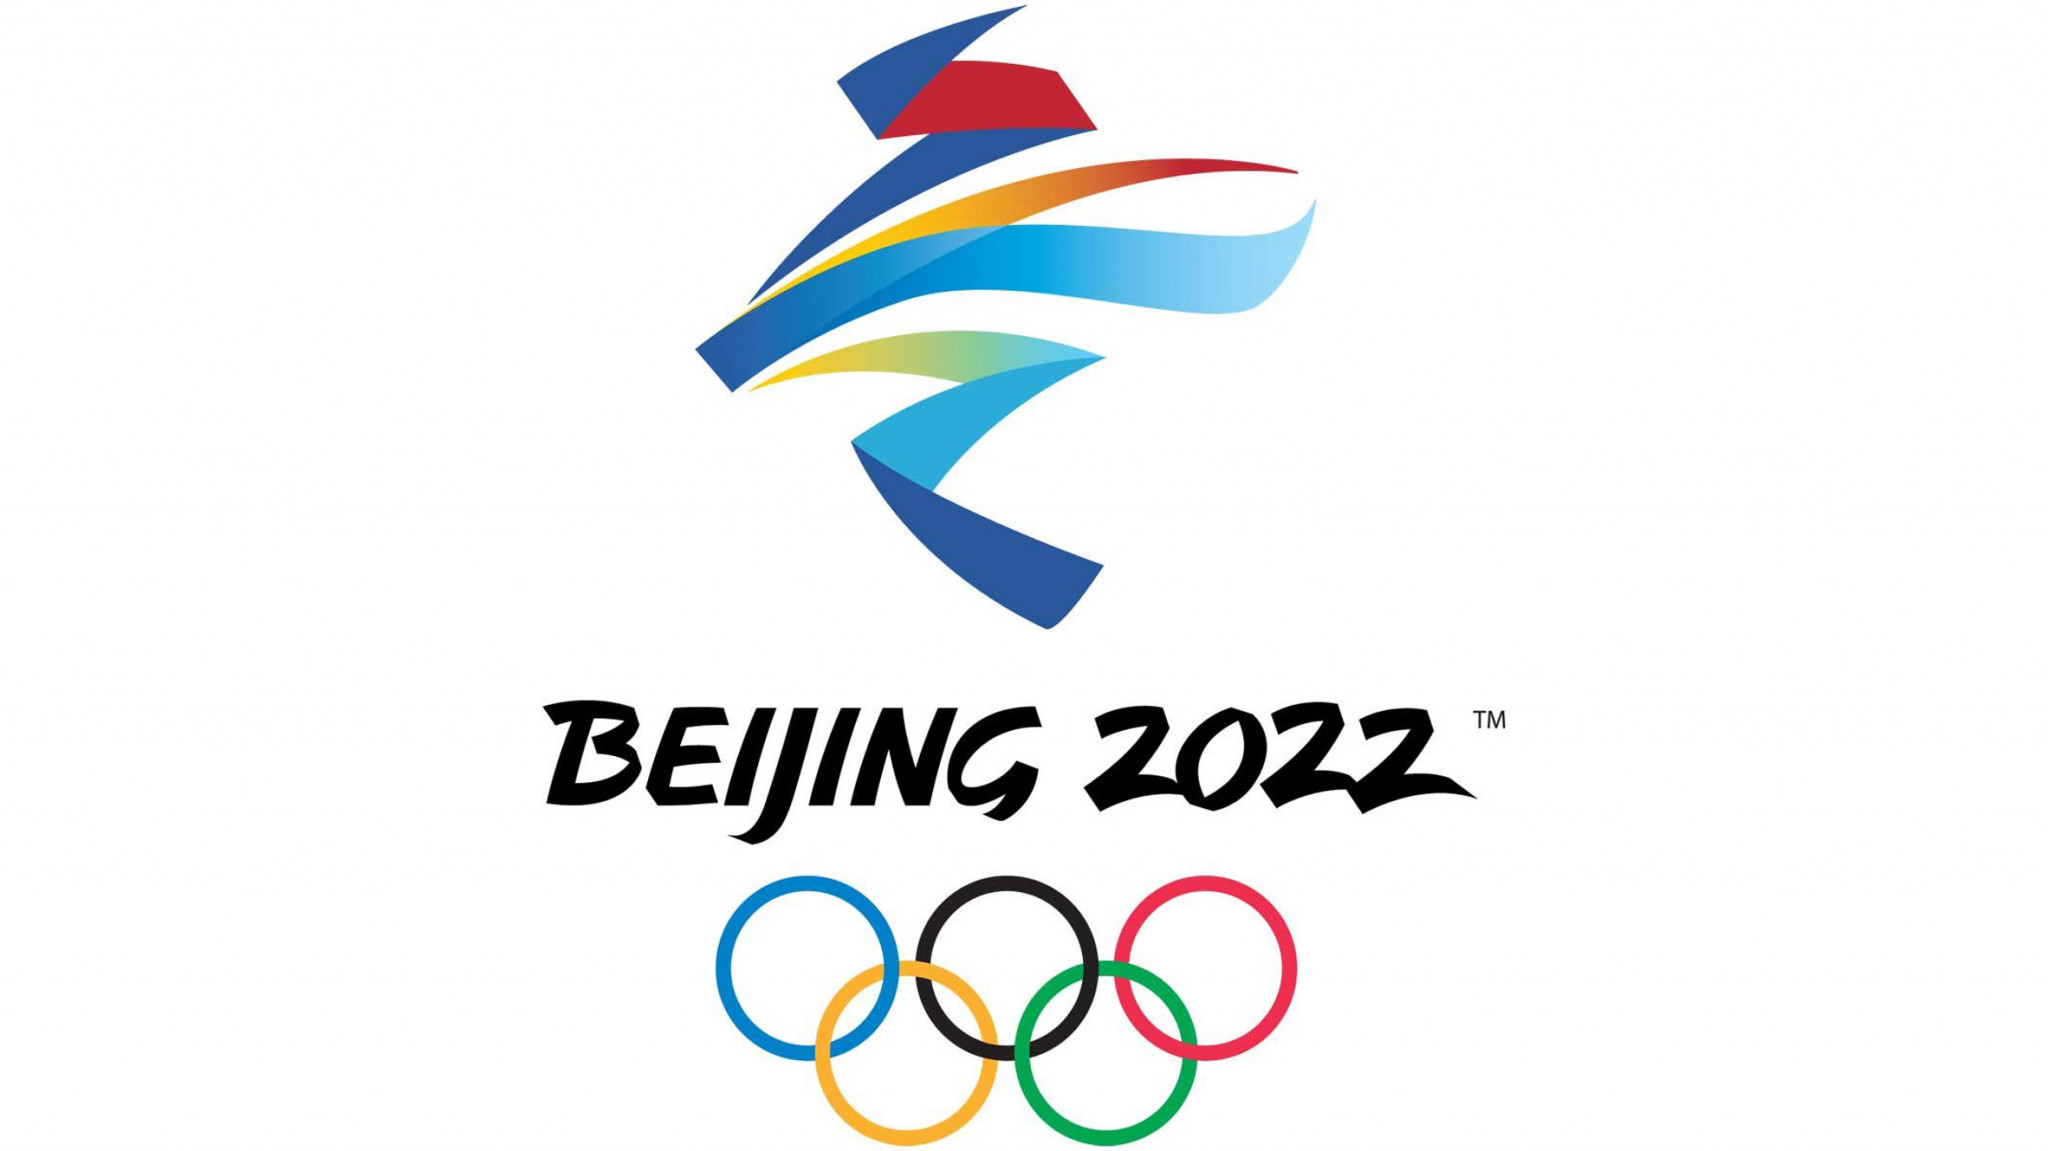 Beijing 2022 coins are set to be issued by the People's Bank of China ©Beijing 2022